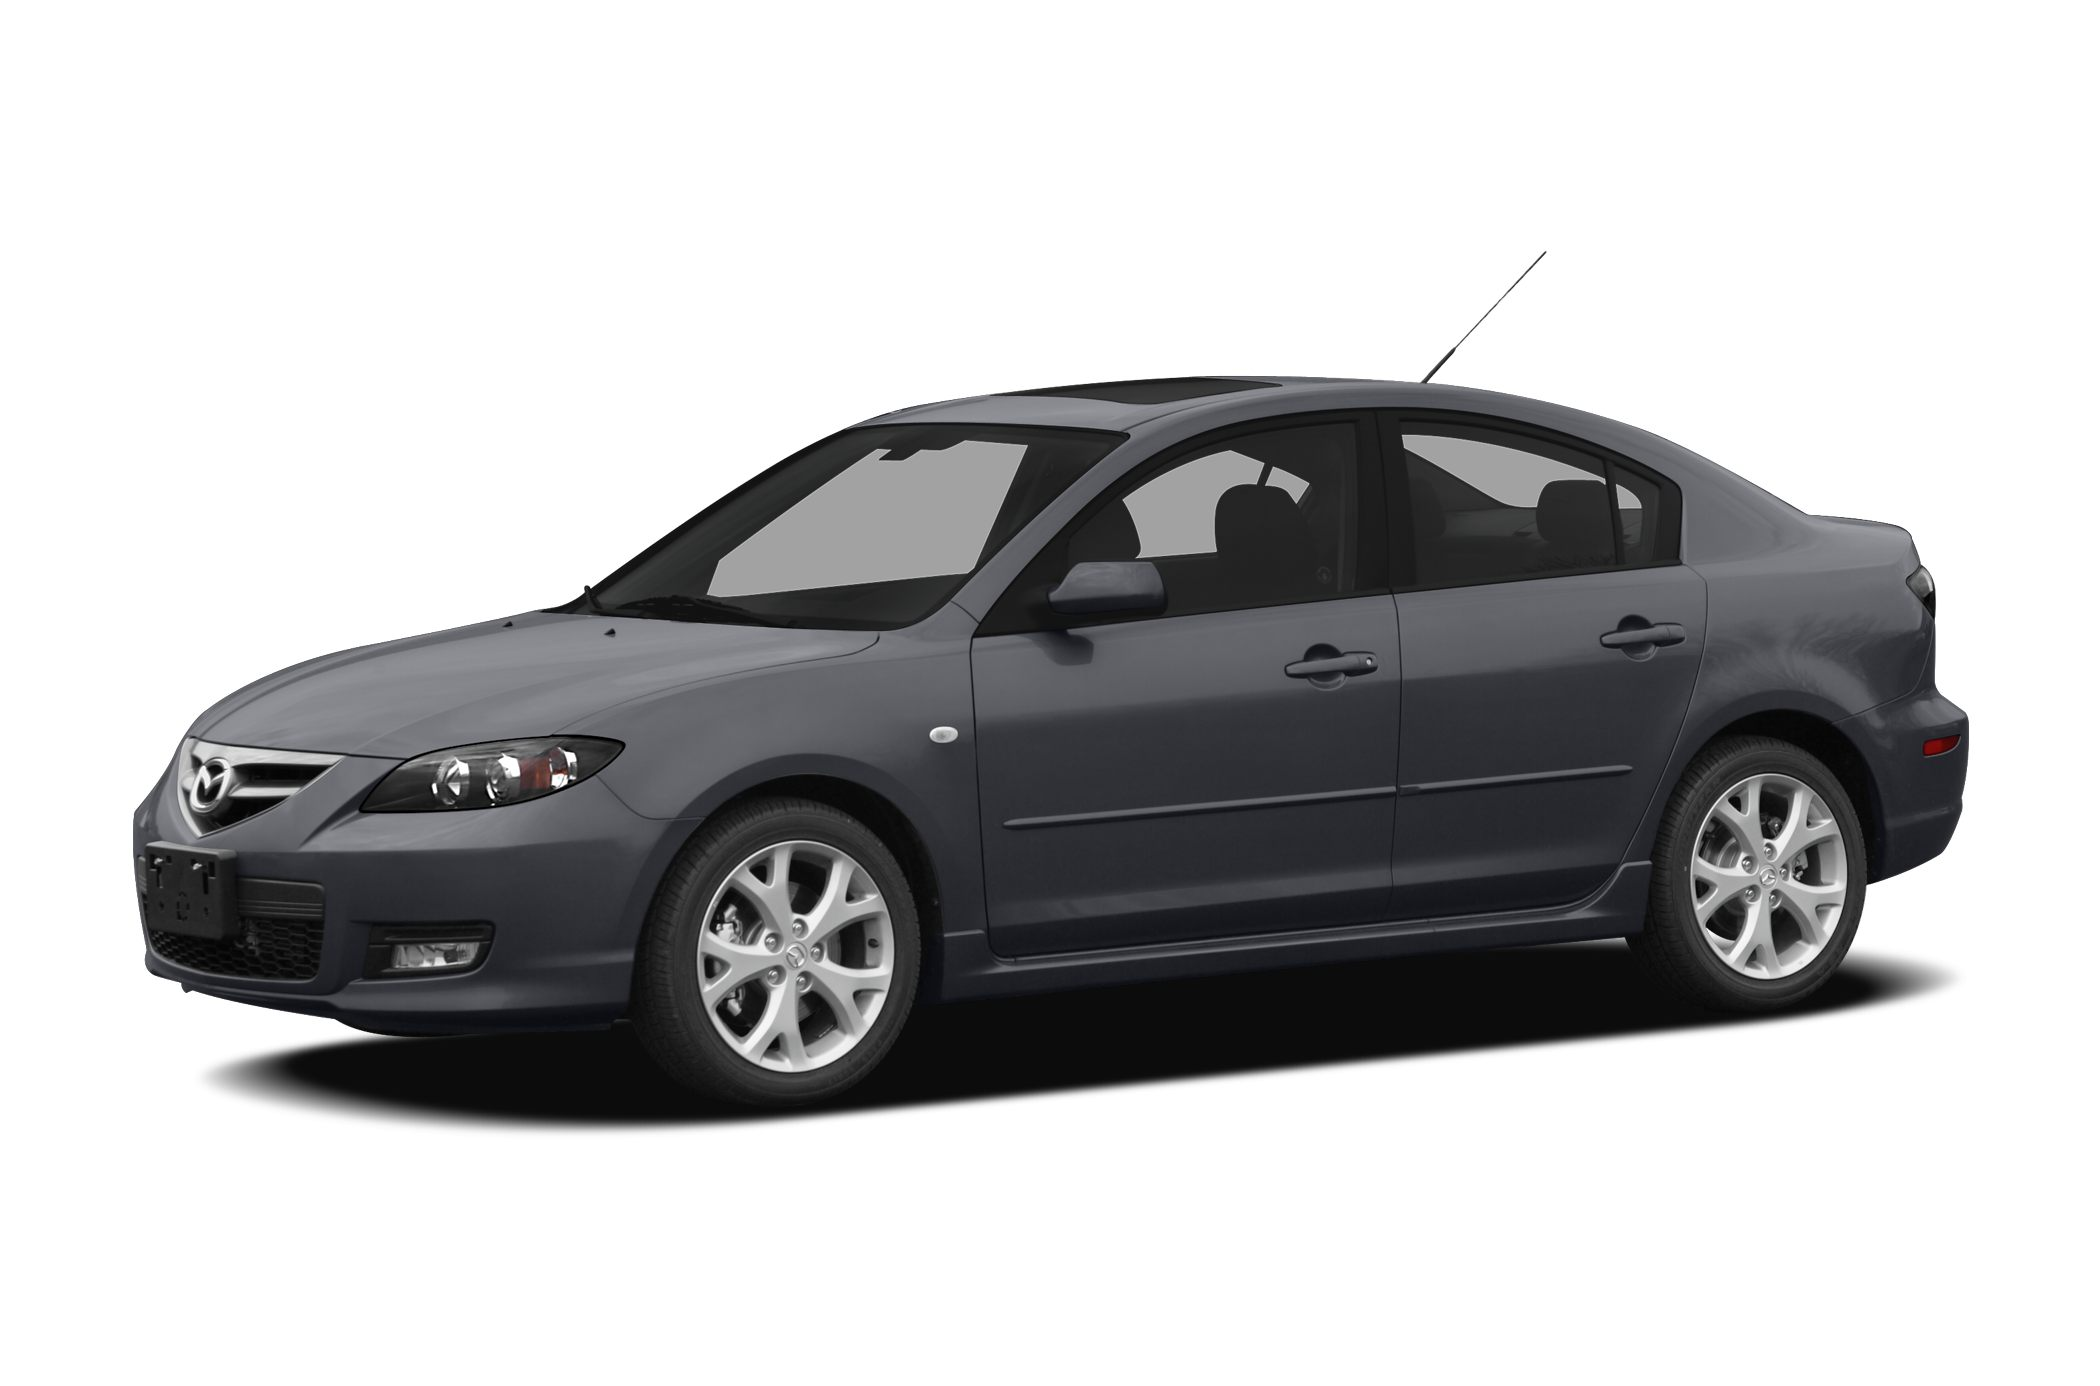 2008 Mazda Mazda3 S Touring Sedan for sale in Minot for $9,990 with 48,075 miles.